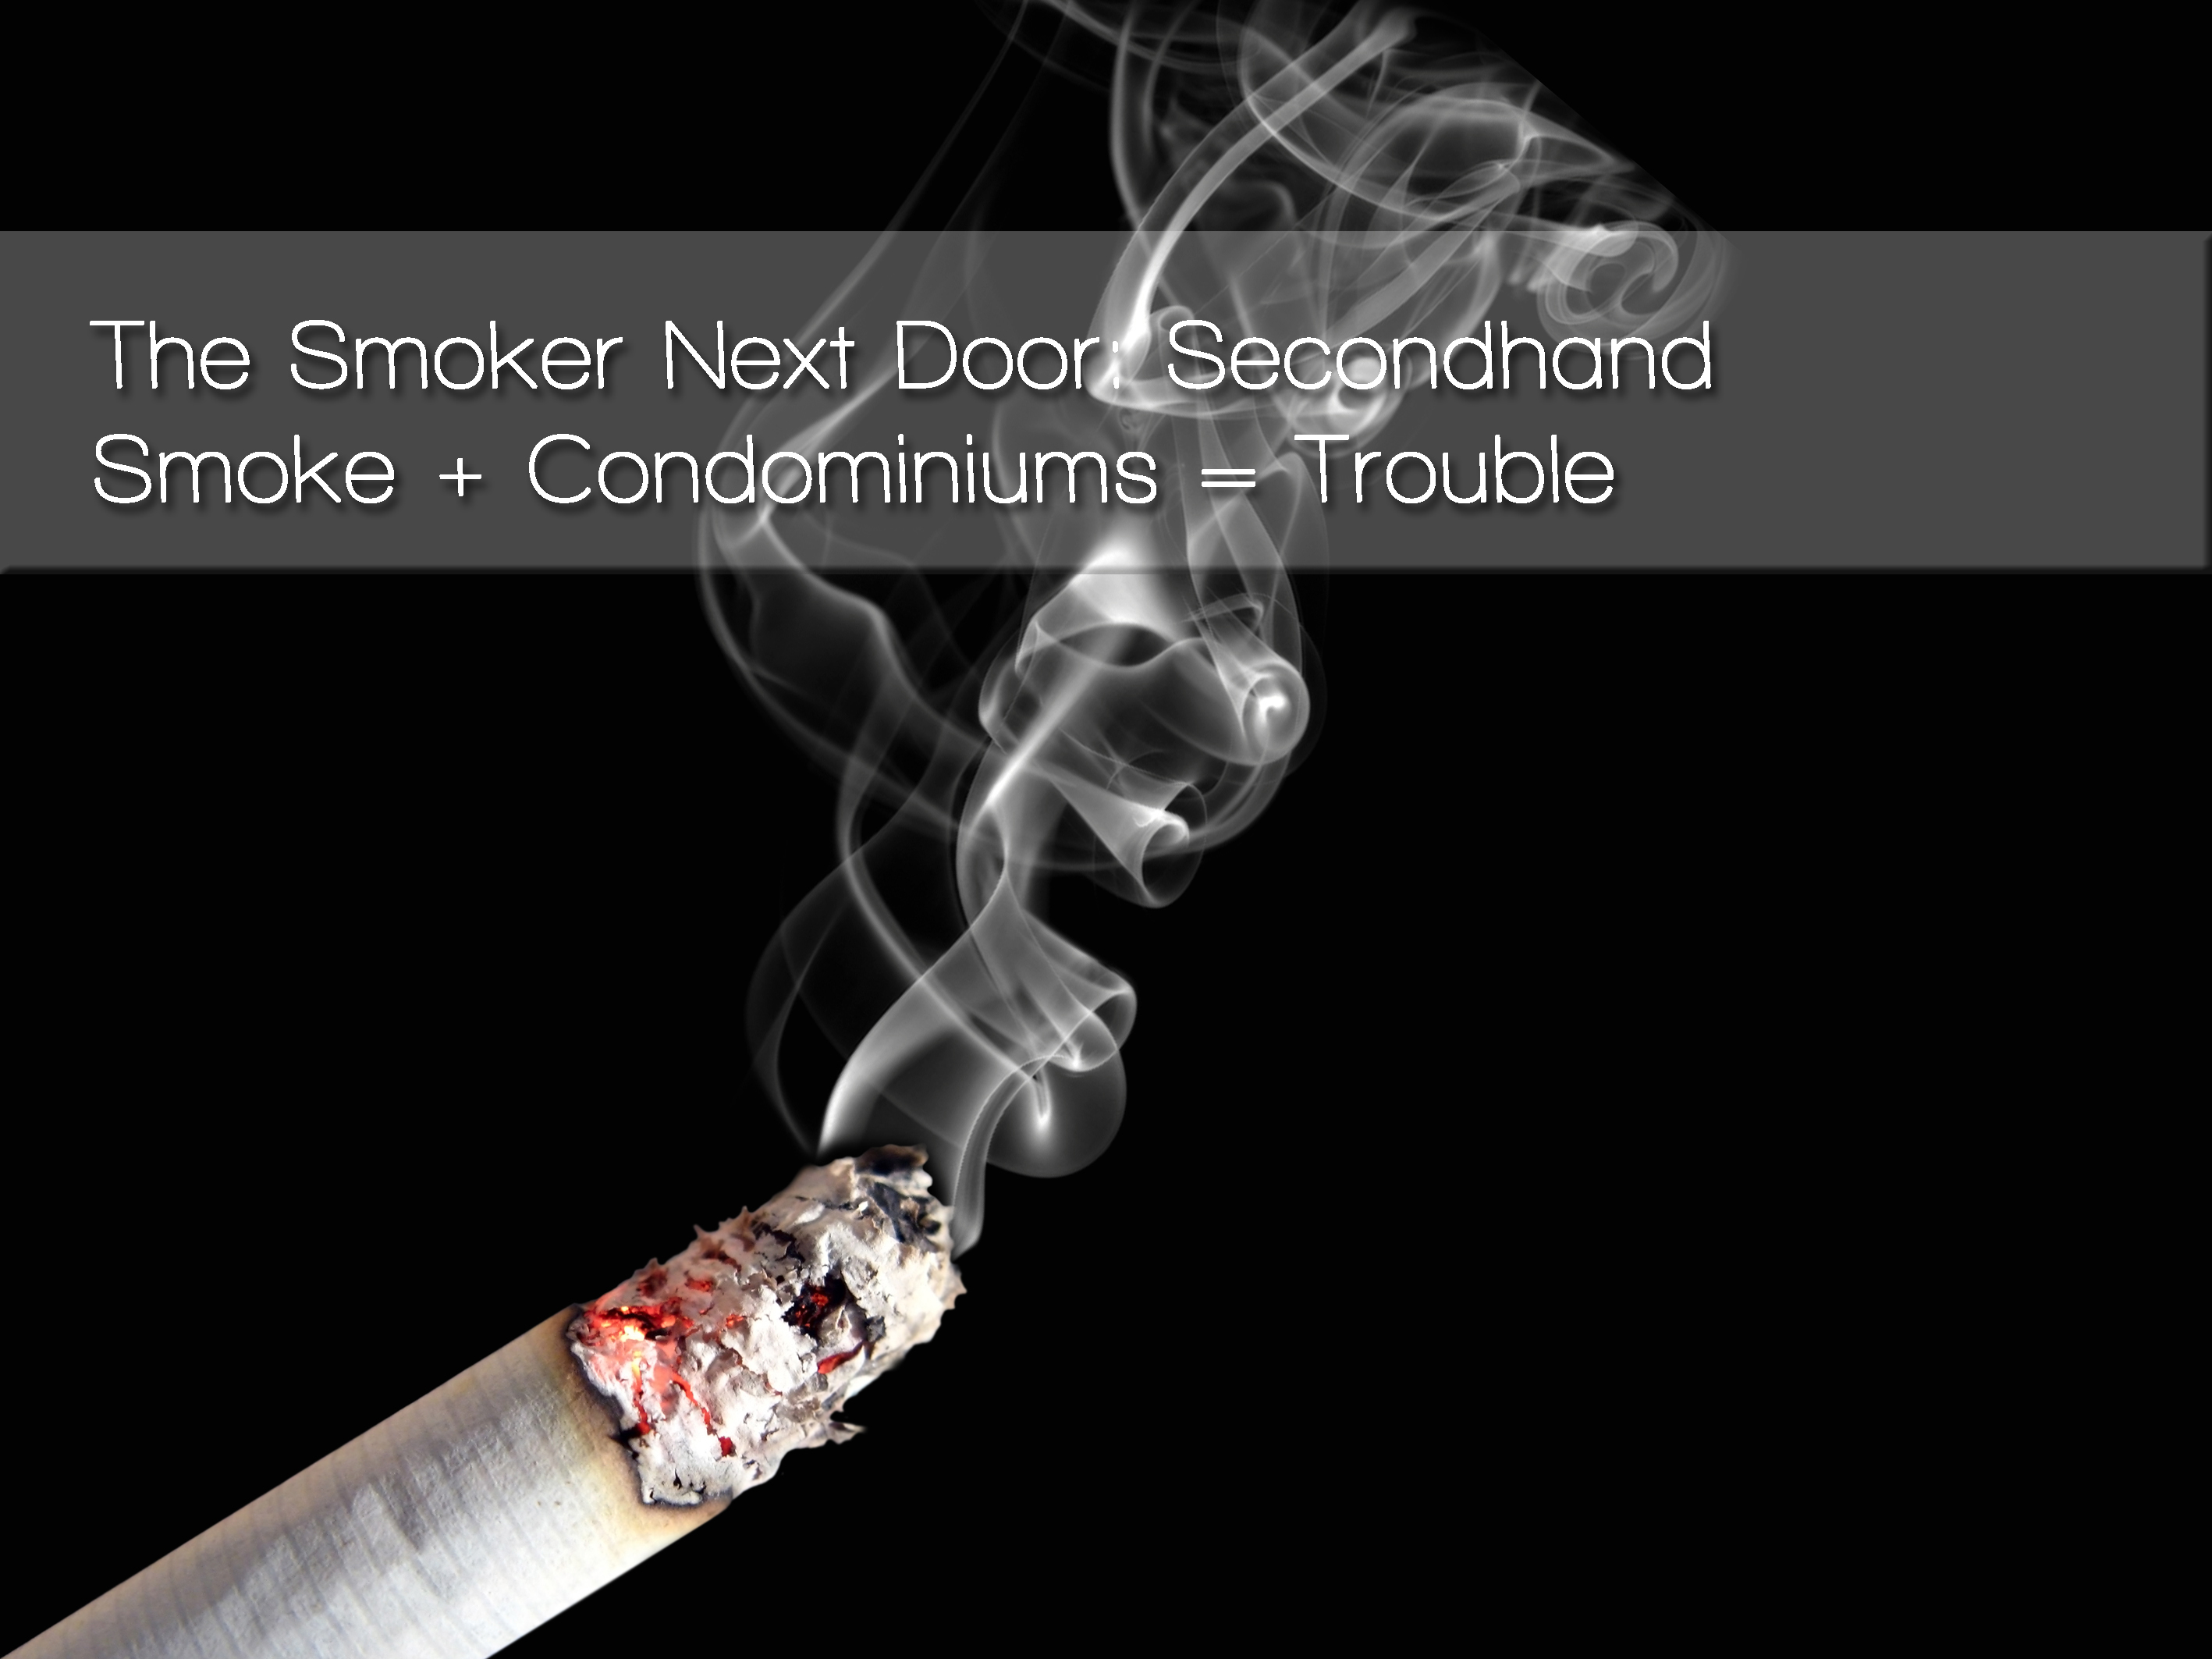 The Smoker Next Door: Secondhand Smoke + Condominiums = Trouble – Article by David C. Swedelson, Esq., Condo and HOA Attorney